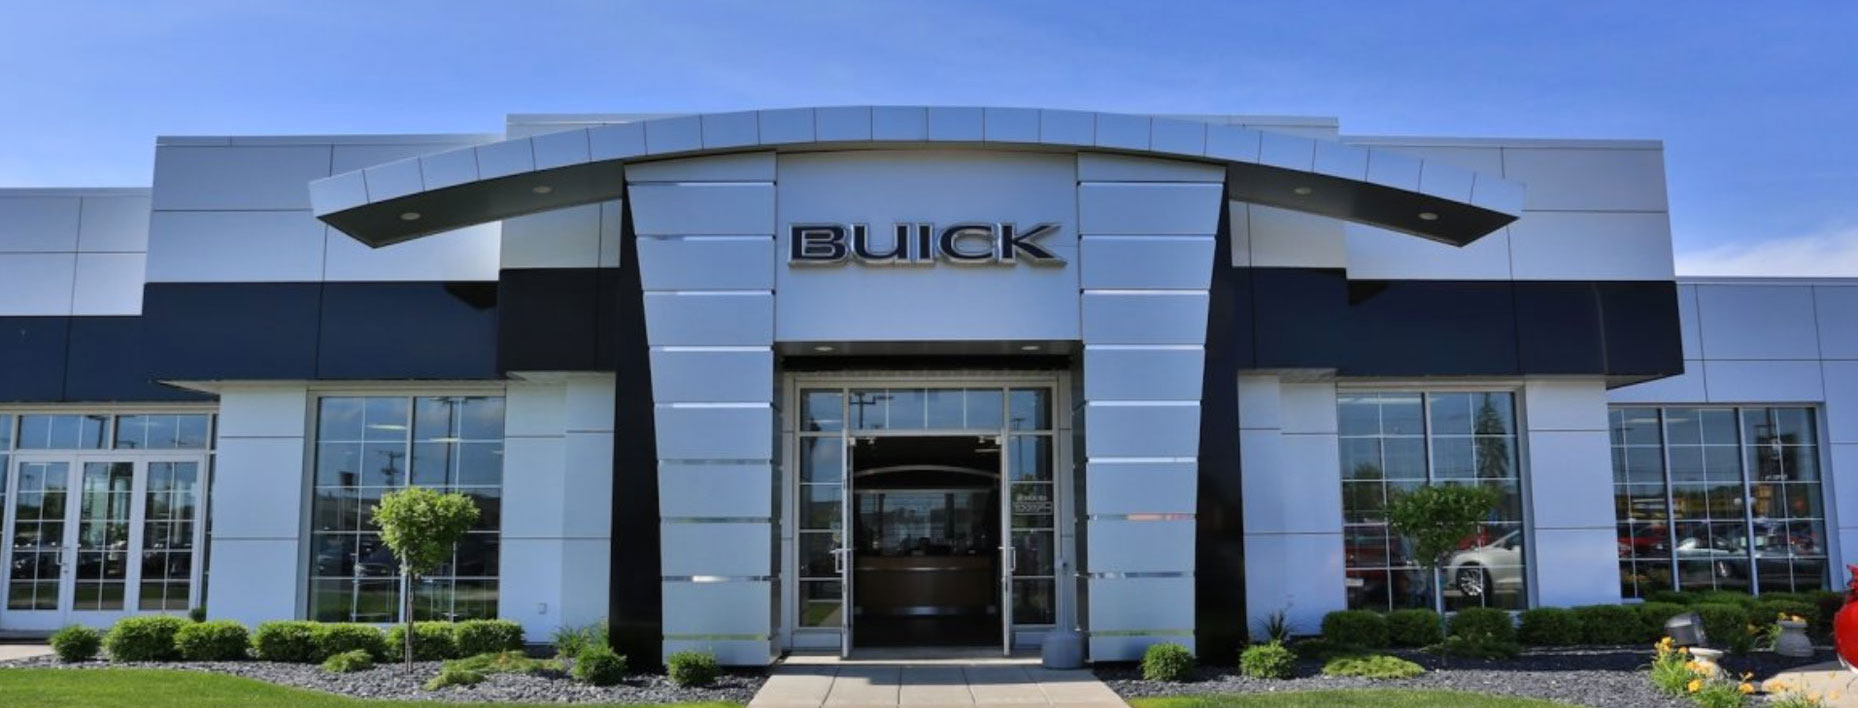 Garber Buick Saginaw Mi >> Caro Used Cars, Trucks, SUVs | Garber Buick Used Vehicles